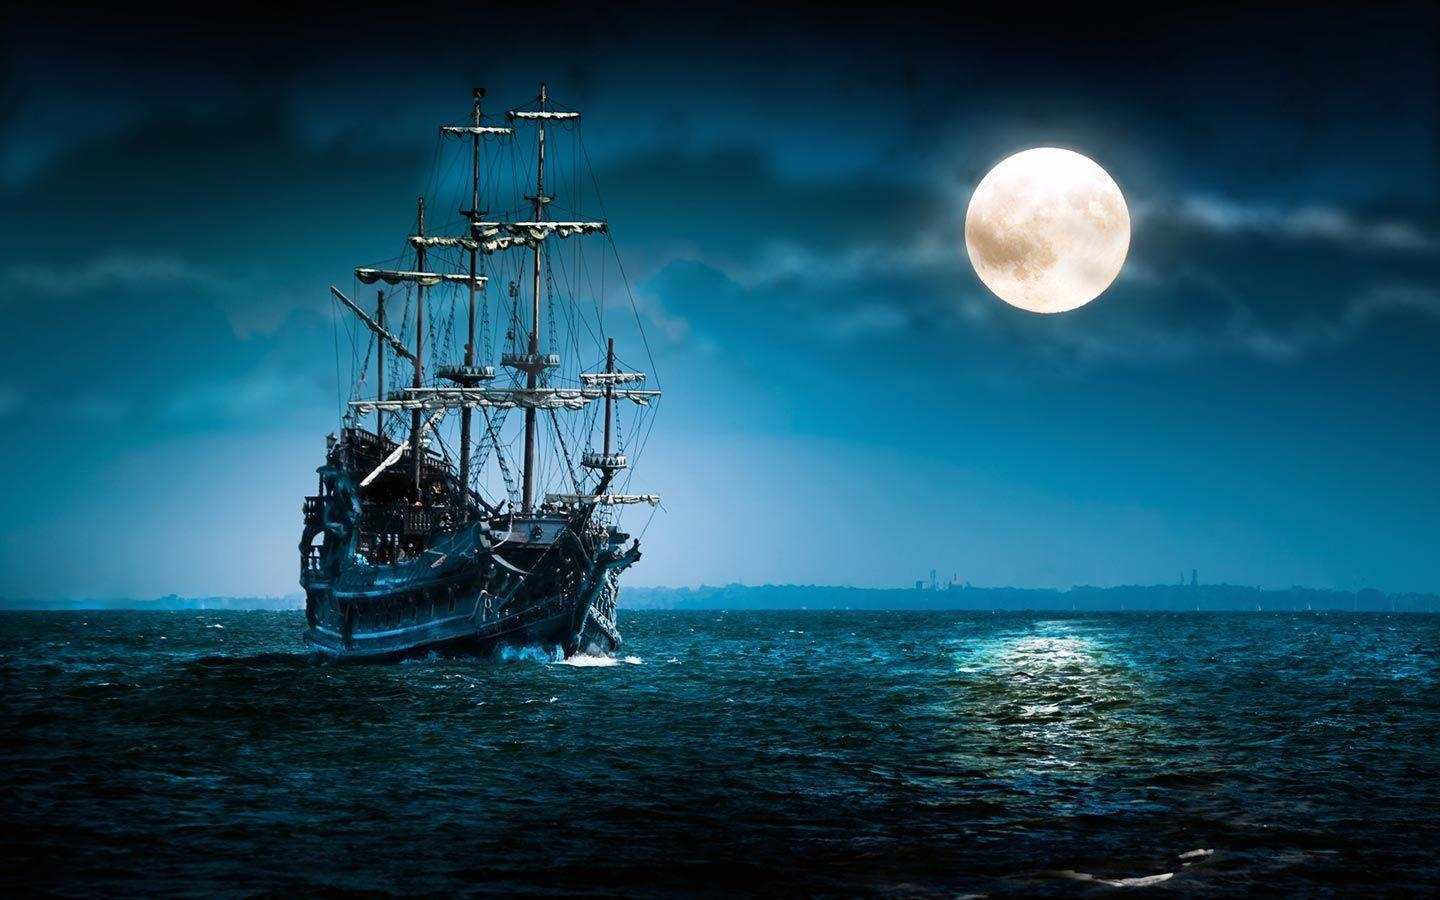 Black Pearl Wallpapers Wallpaper Cave